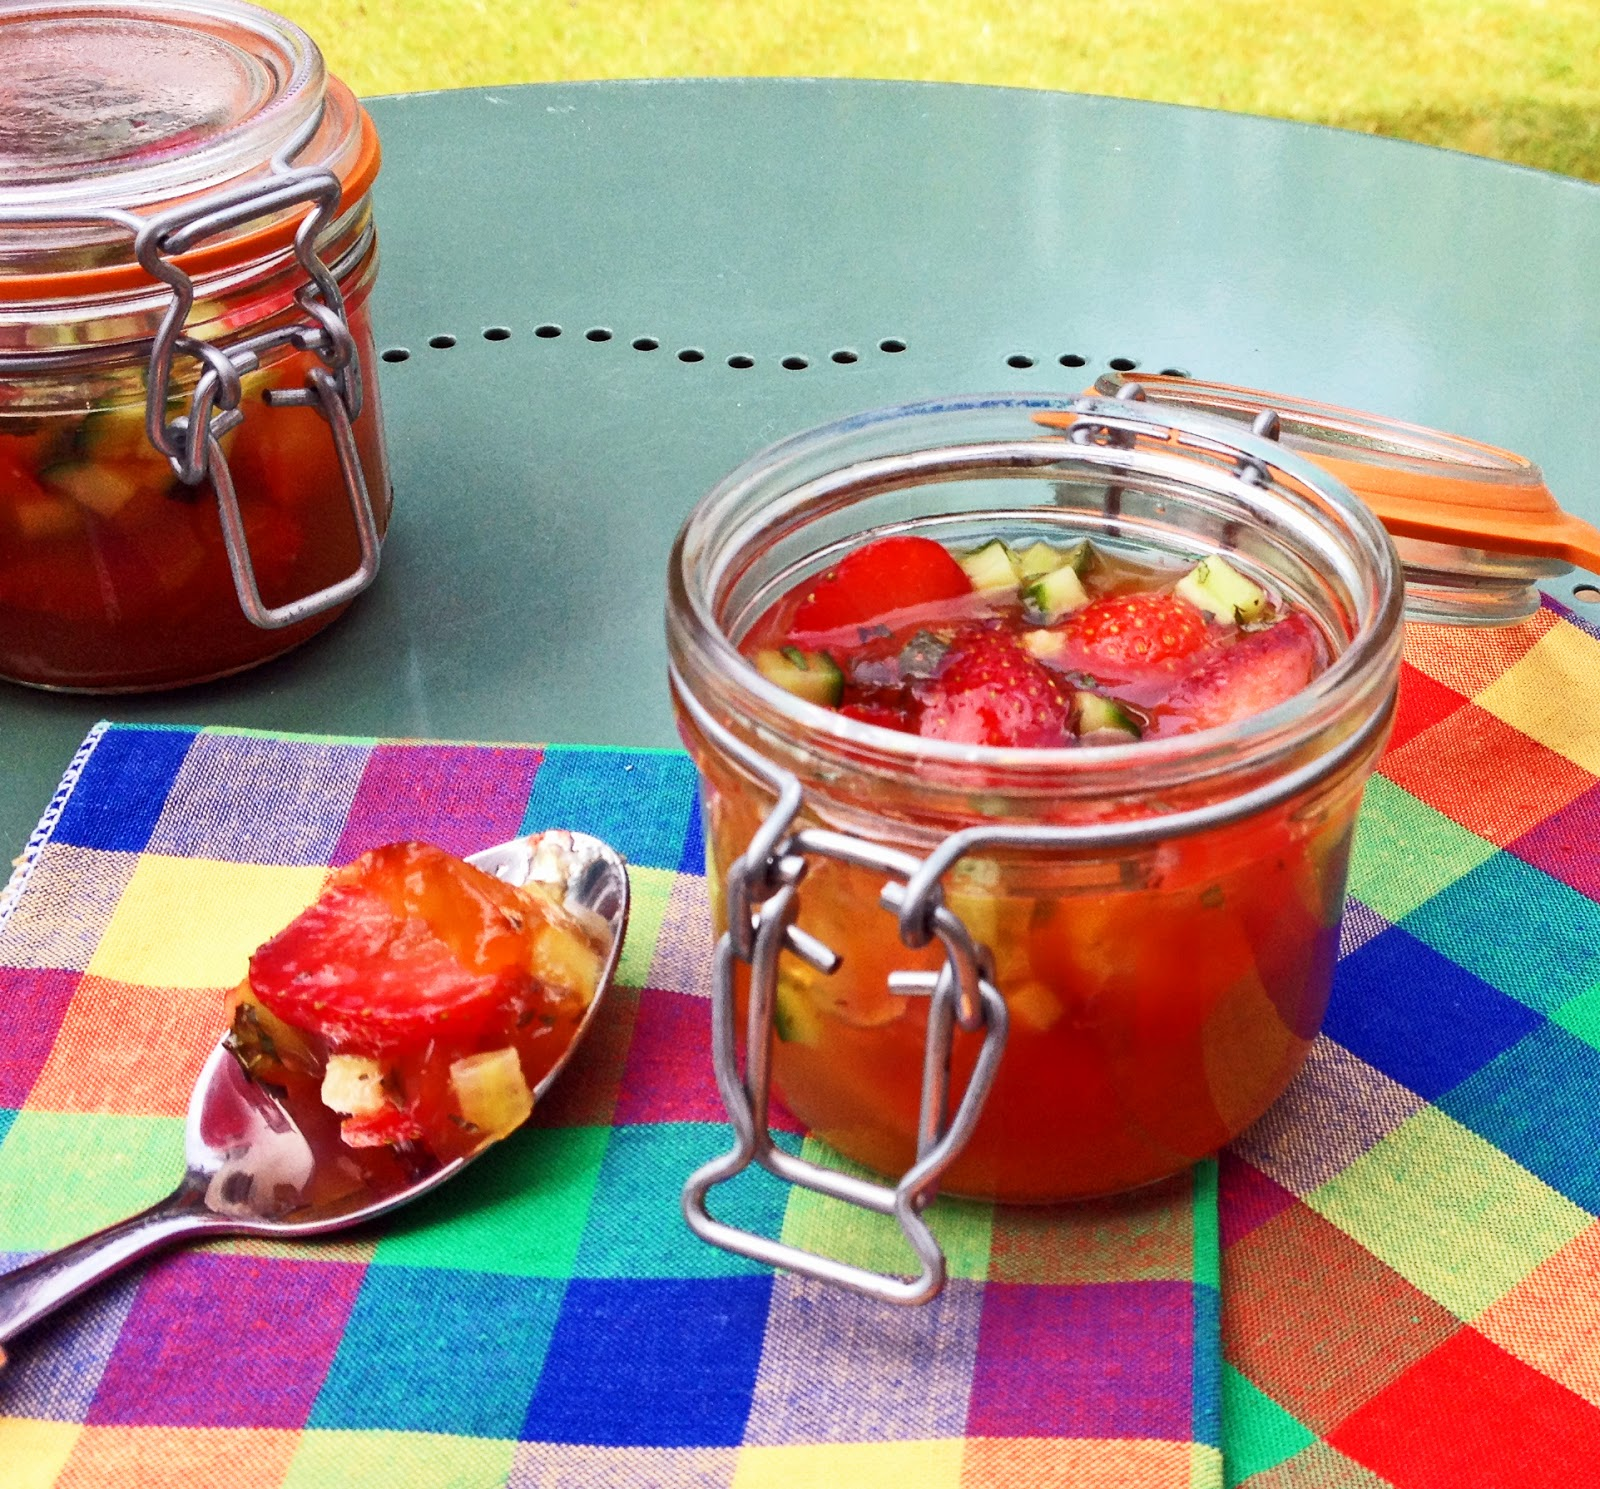 Pimm's jelly jars - fruity and refreshing